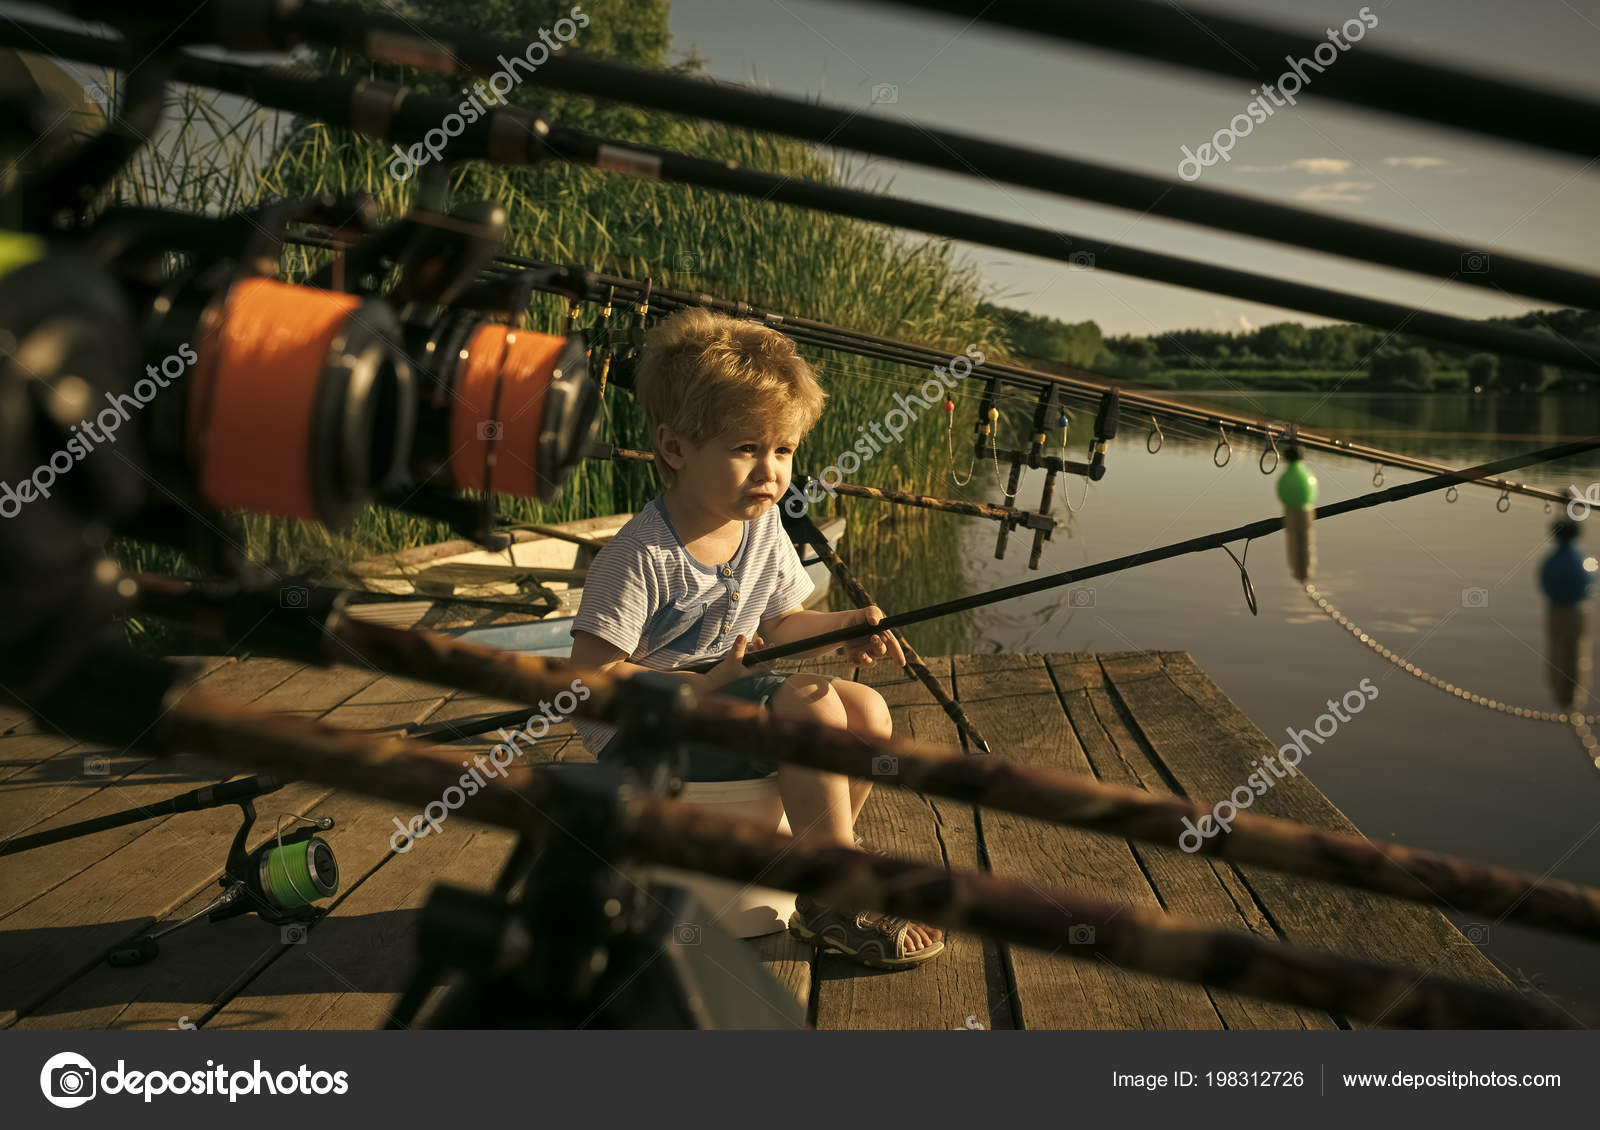 a1e41d9ed1fc9 Kid play. Little baby boy fishing on bank of river with fishing rod ...